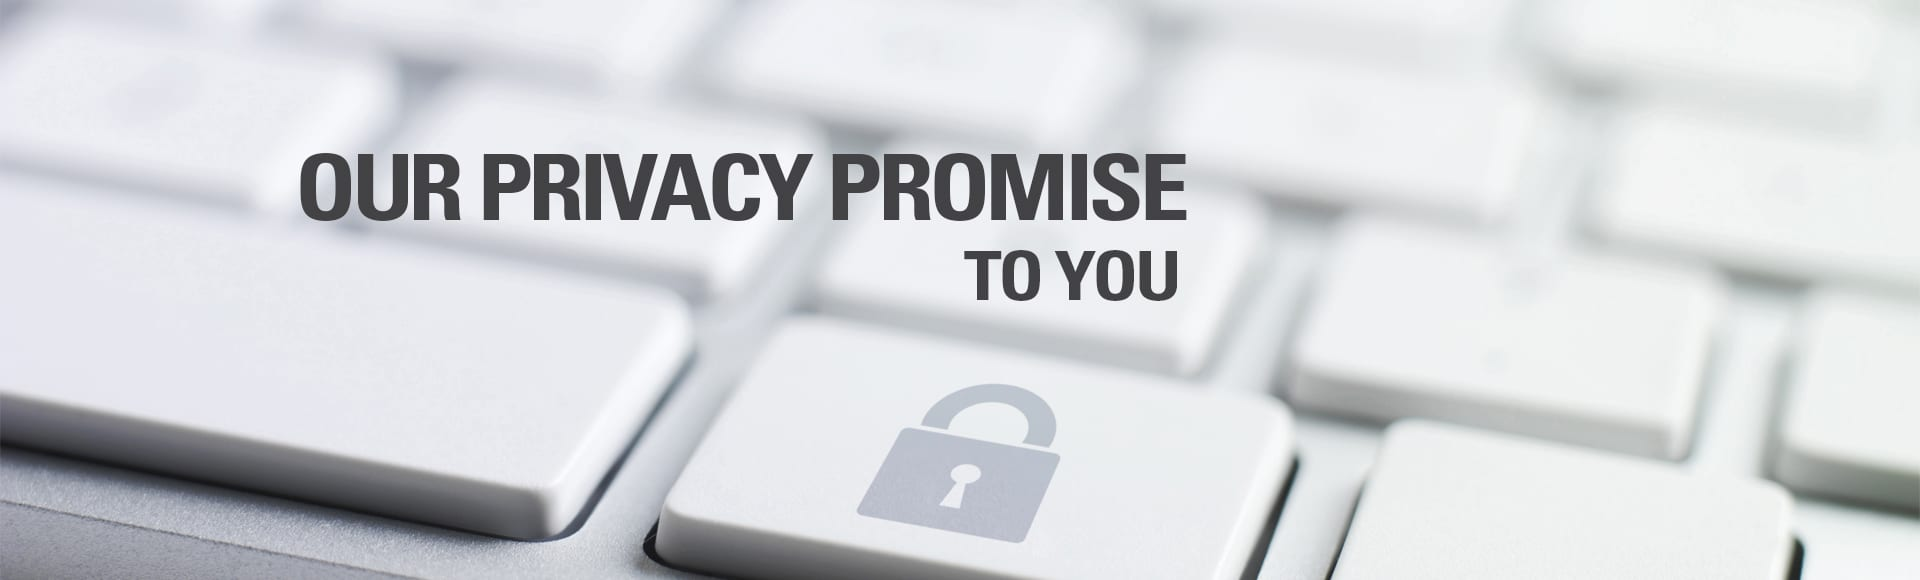 Our Privacy Promise to you